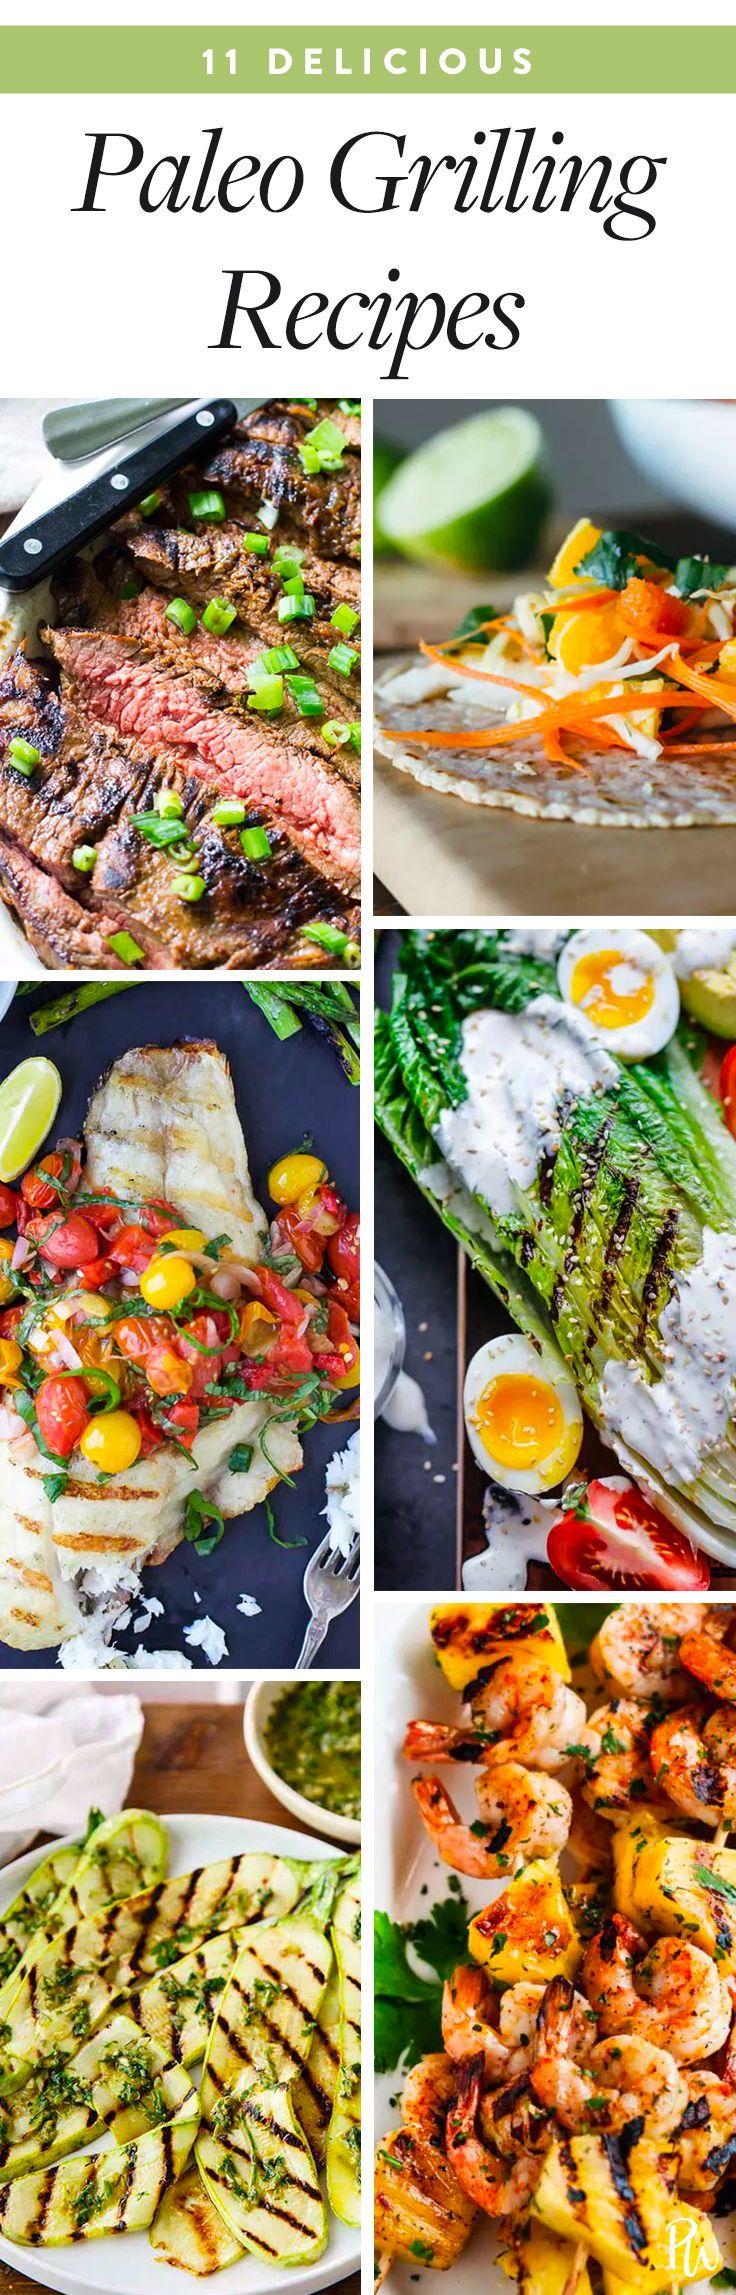 11 Paleo Recipes To Make On The Grill This Summer Paleo Recipes Paleo Recipes Dinner Paleo Grilling